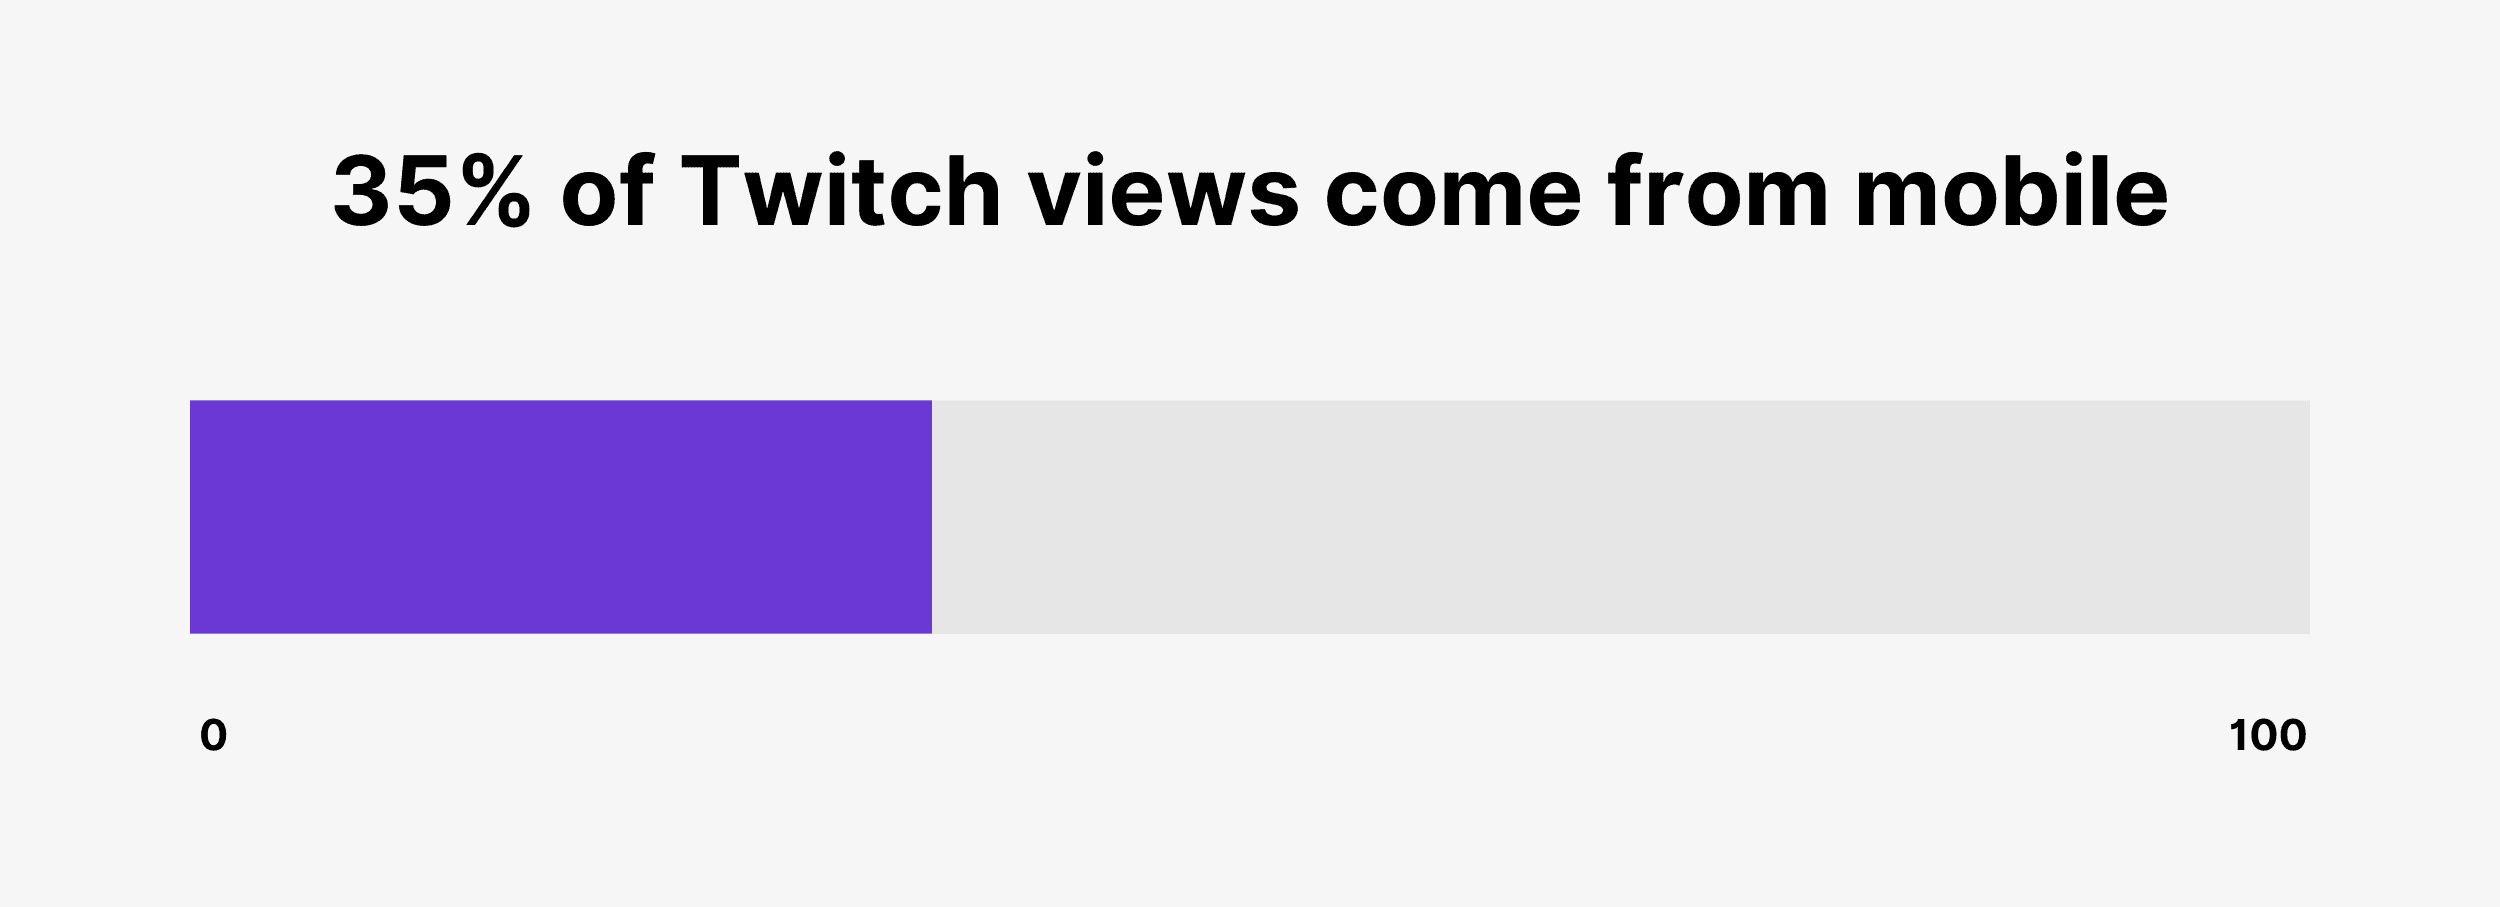 35% of Twitch views come from mobile